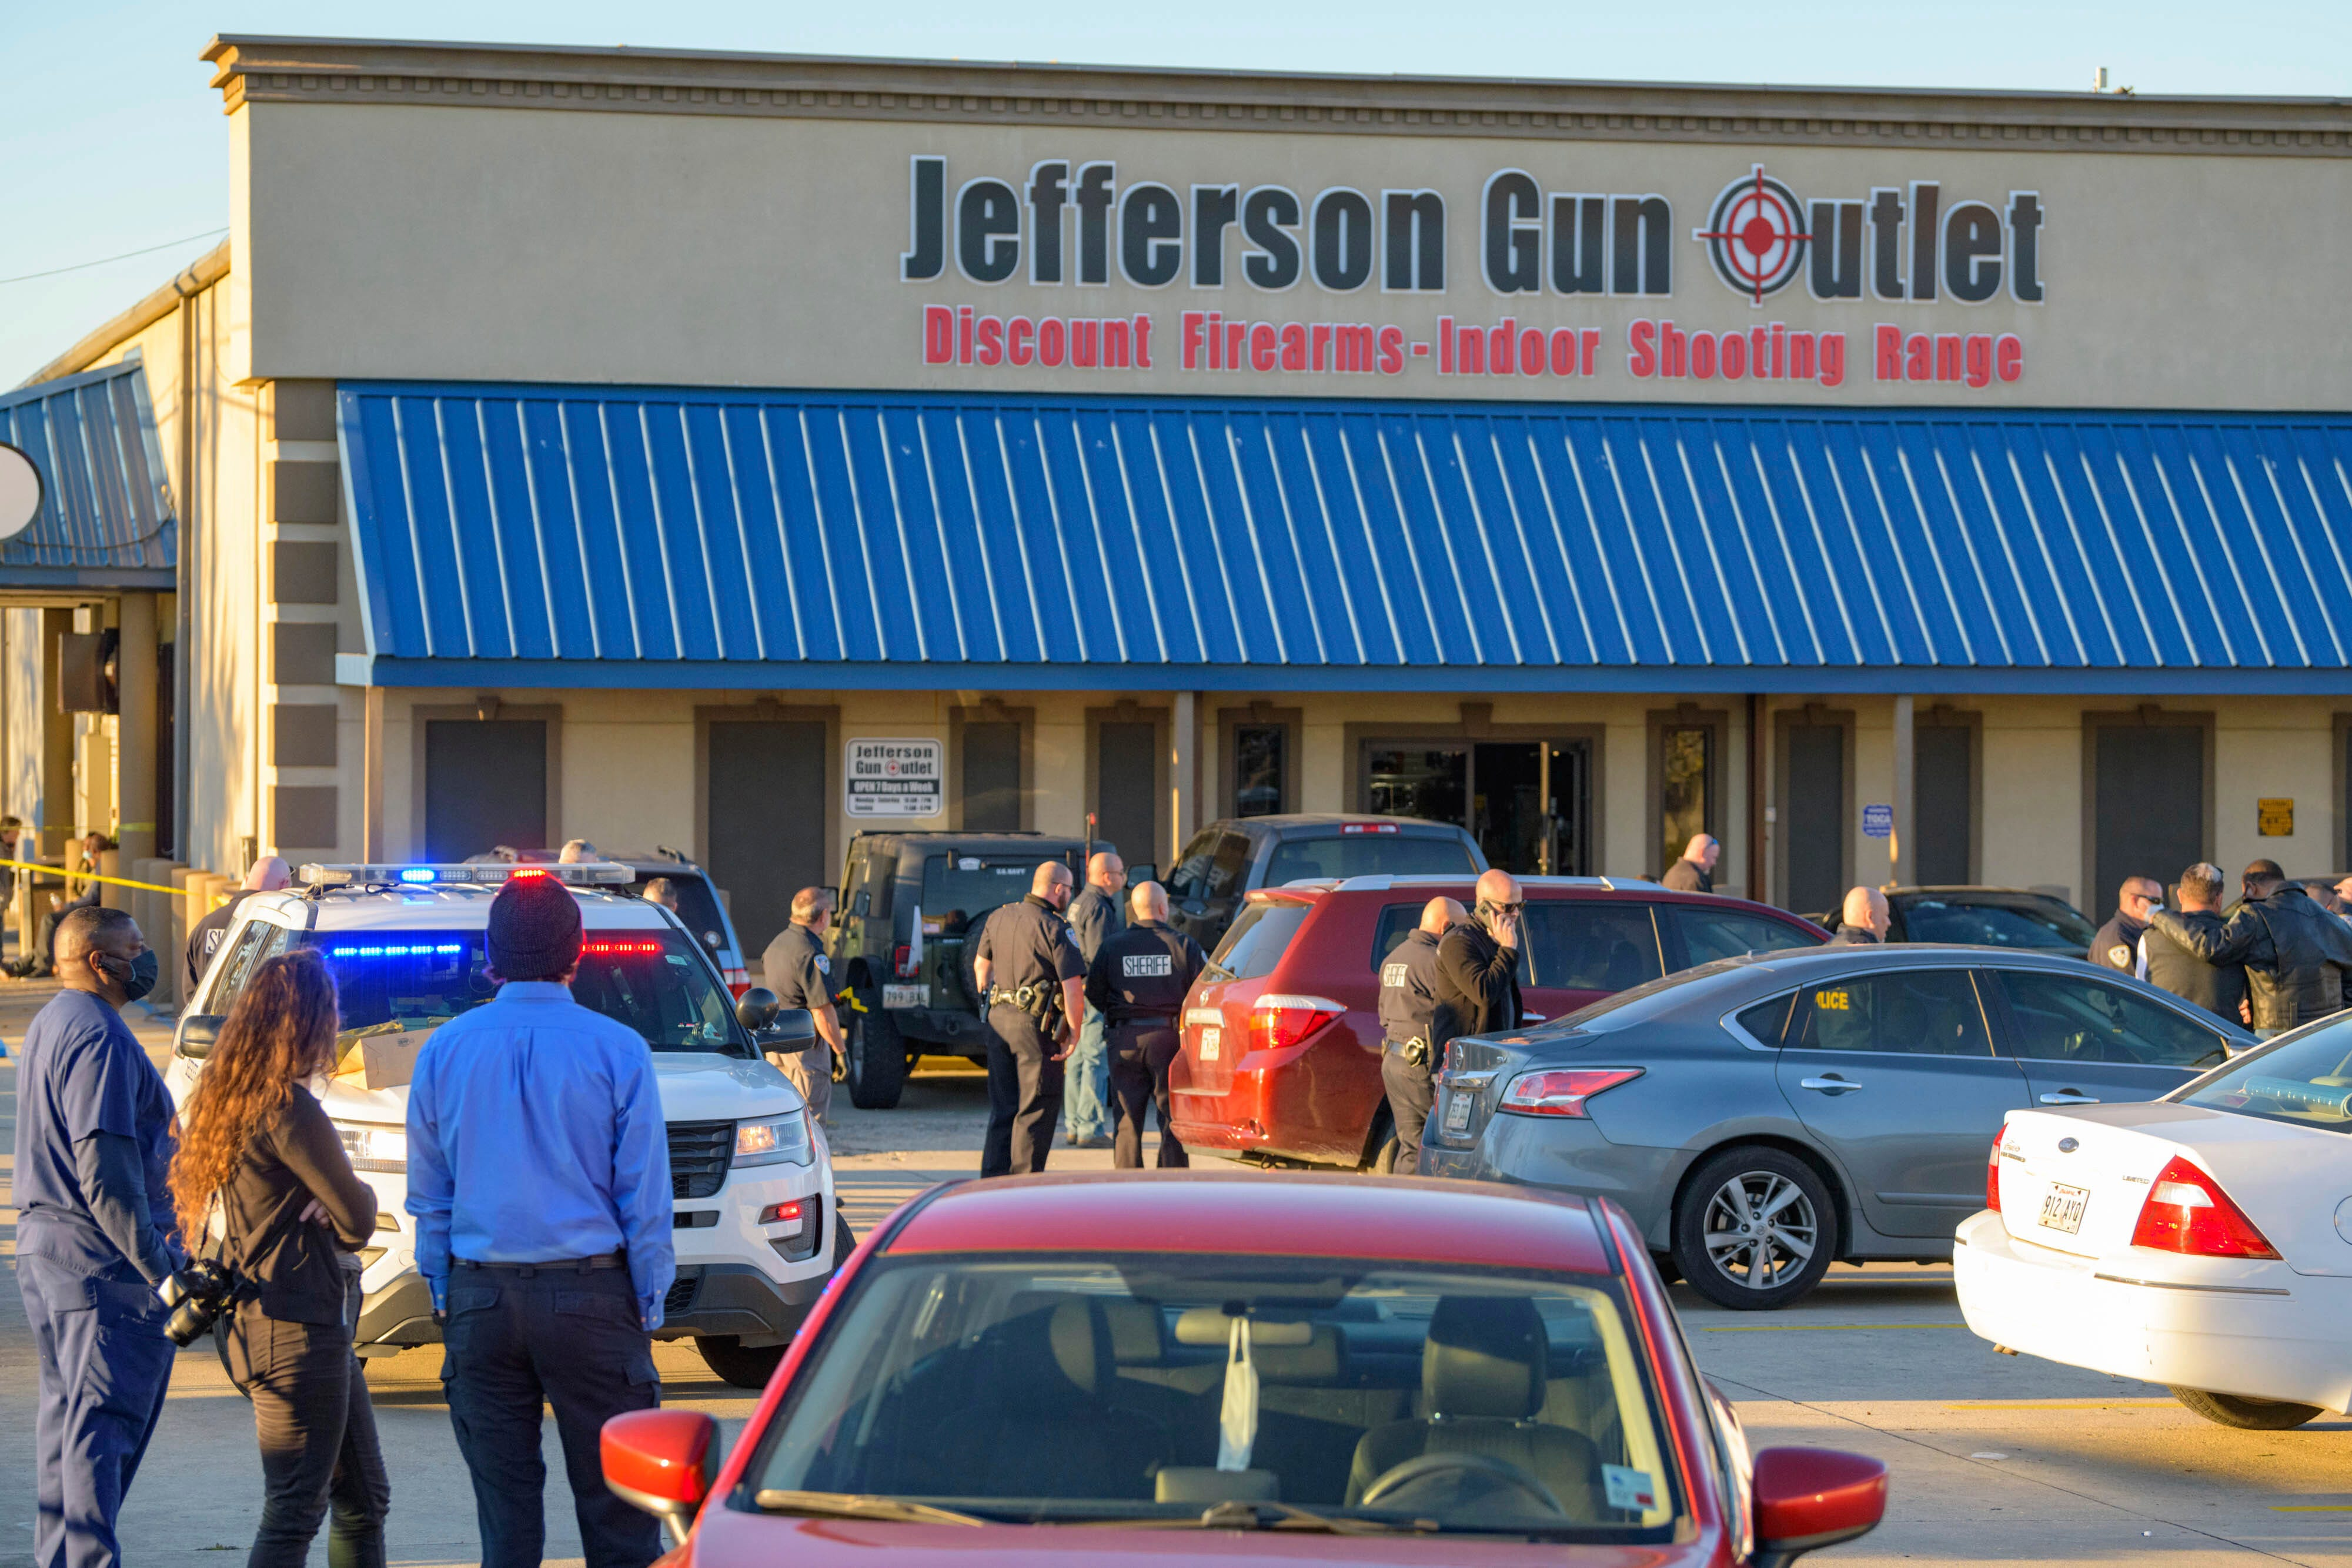 Sheriff: 3 dead in gun store shooting in New Orleans suburb 2